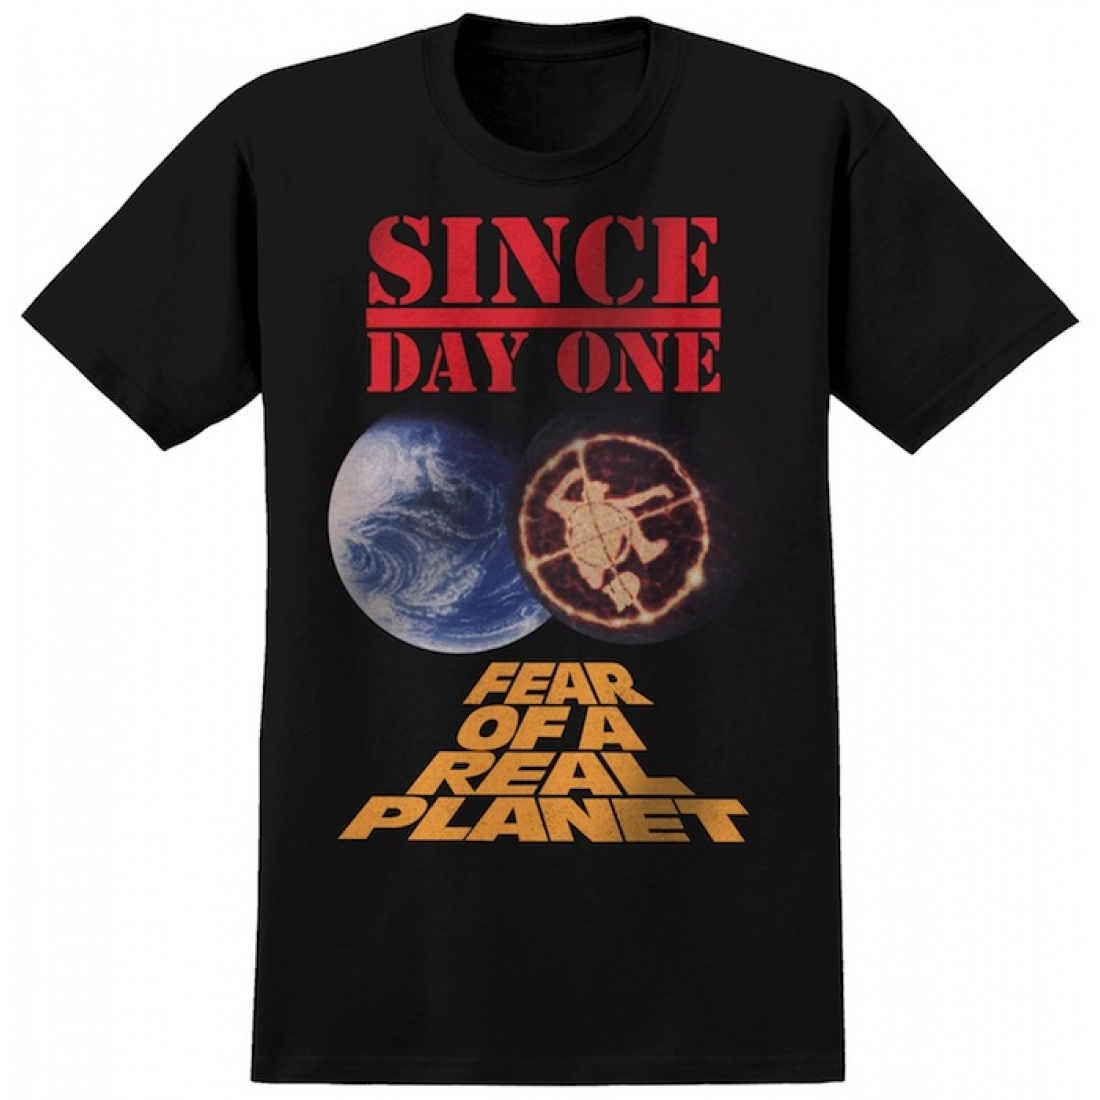 RL-Ishod Planet Black Tee